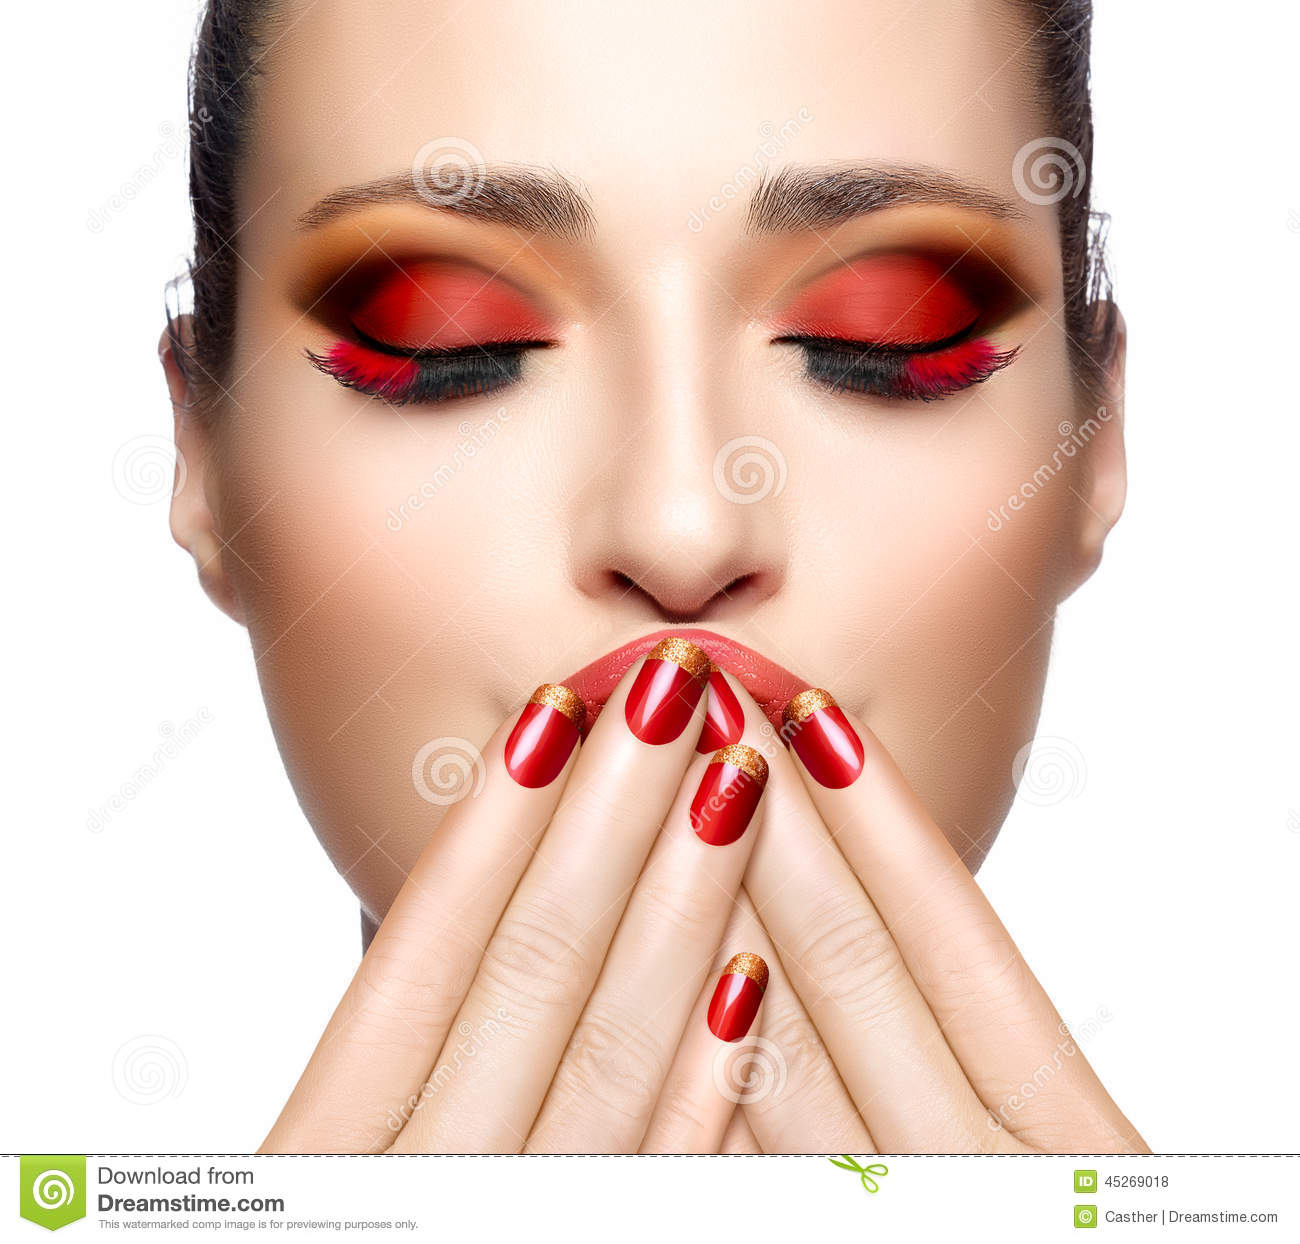 Free Manicure Beauty Hands Makeover: Beautiful Girl In Red With Hands On Her Face. Nail Art And